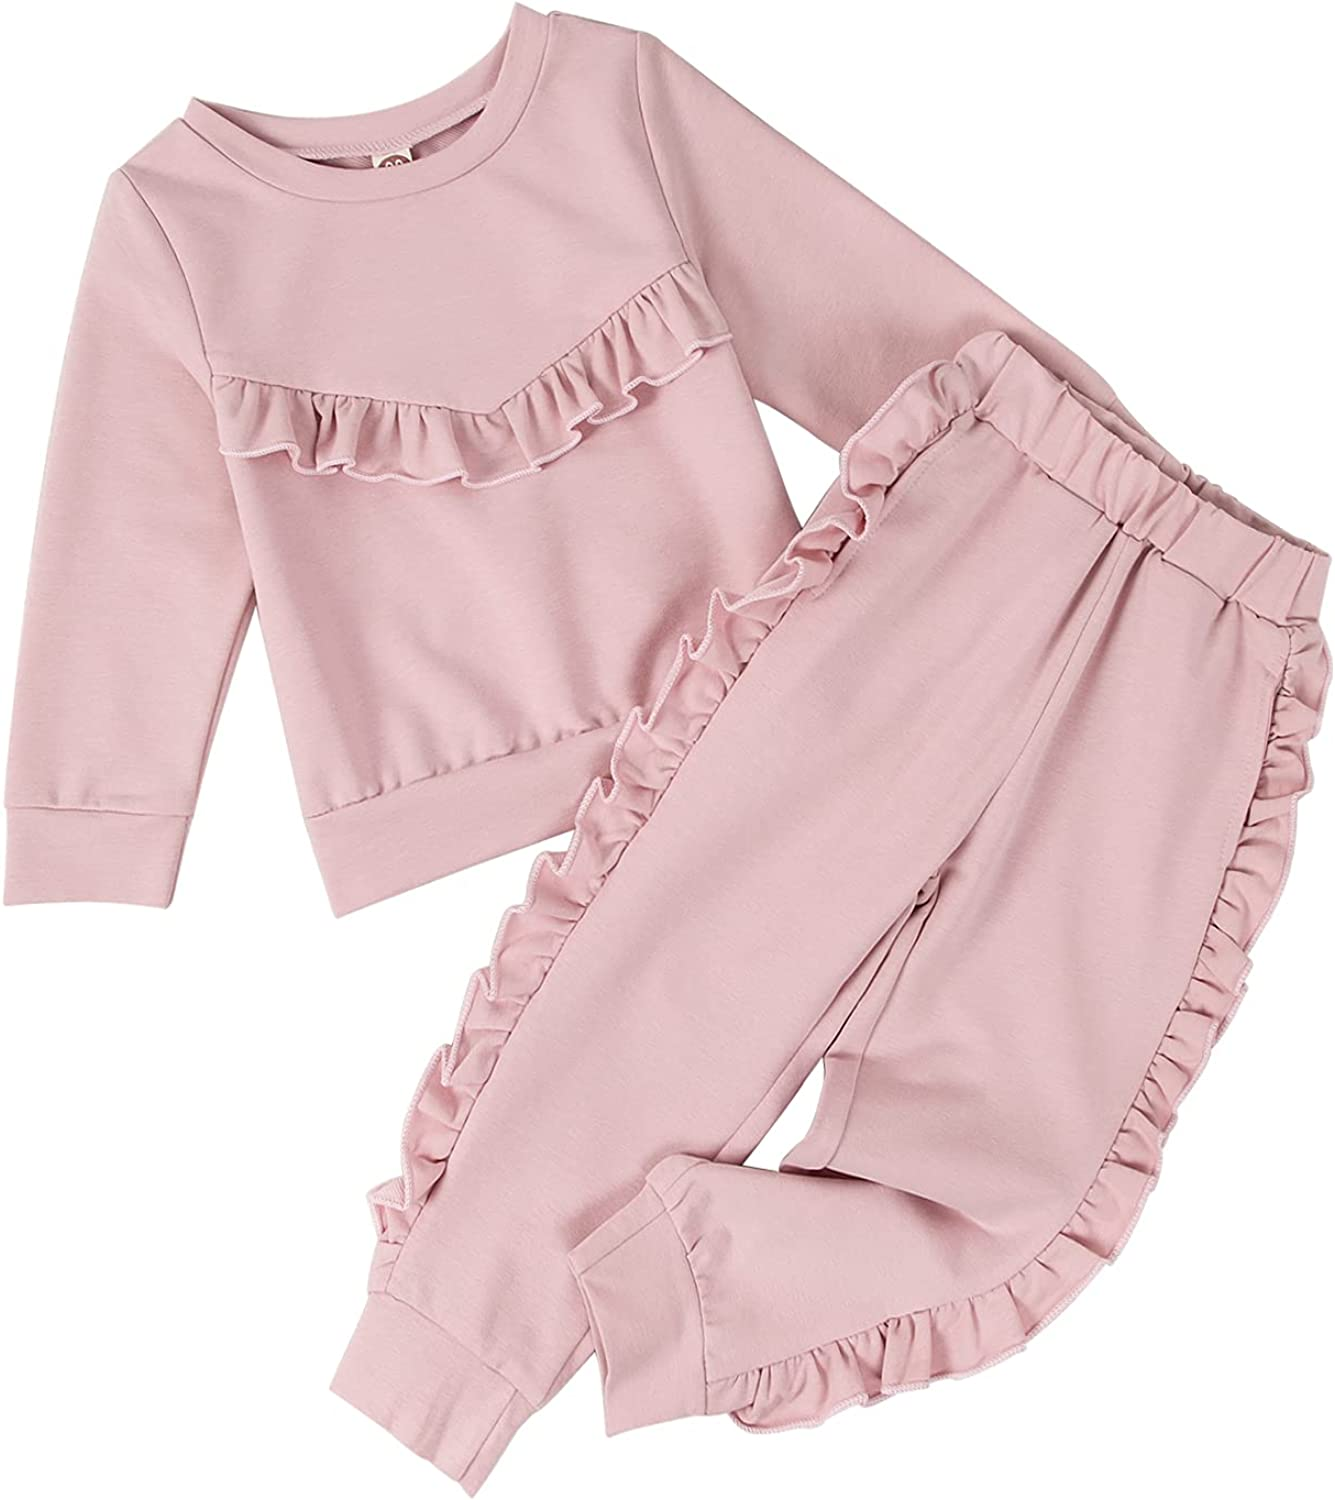 Ruffled Infant Baby Girl Clothes Set Long Sleeve Solid Cotton Sweatshirts Tops Pants Fall Winter Outfits 2-7T